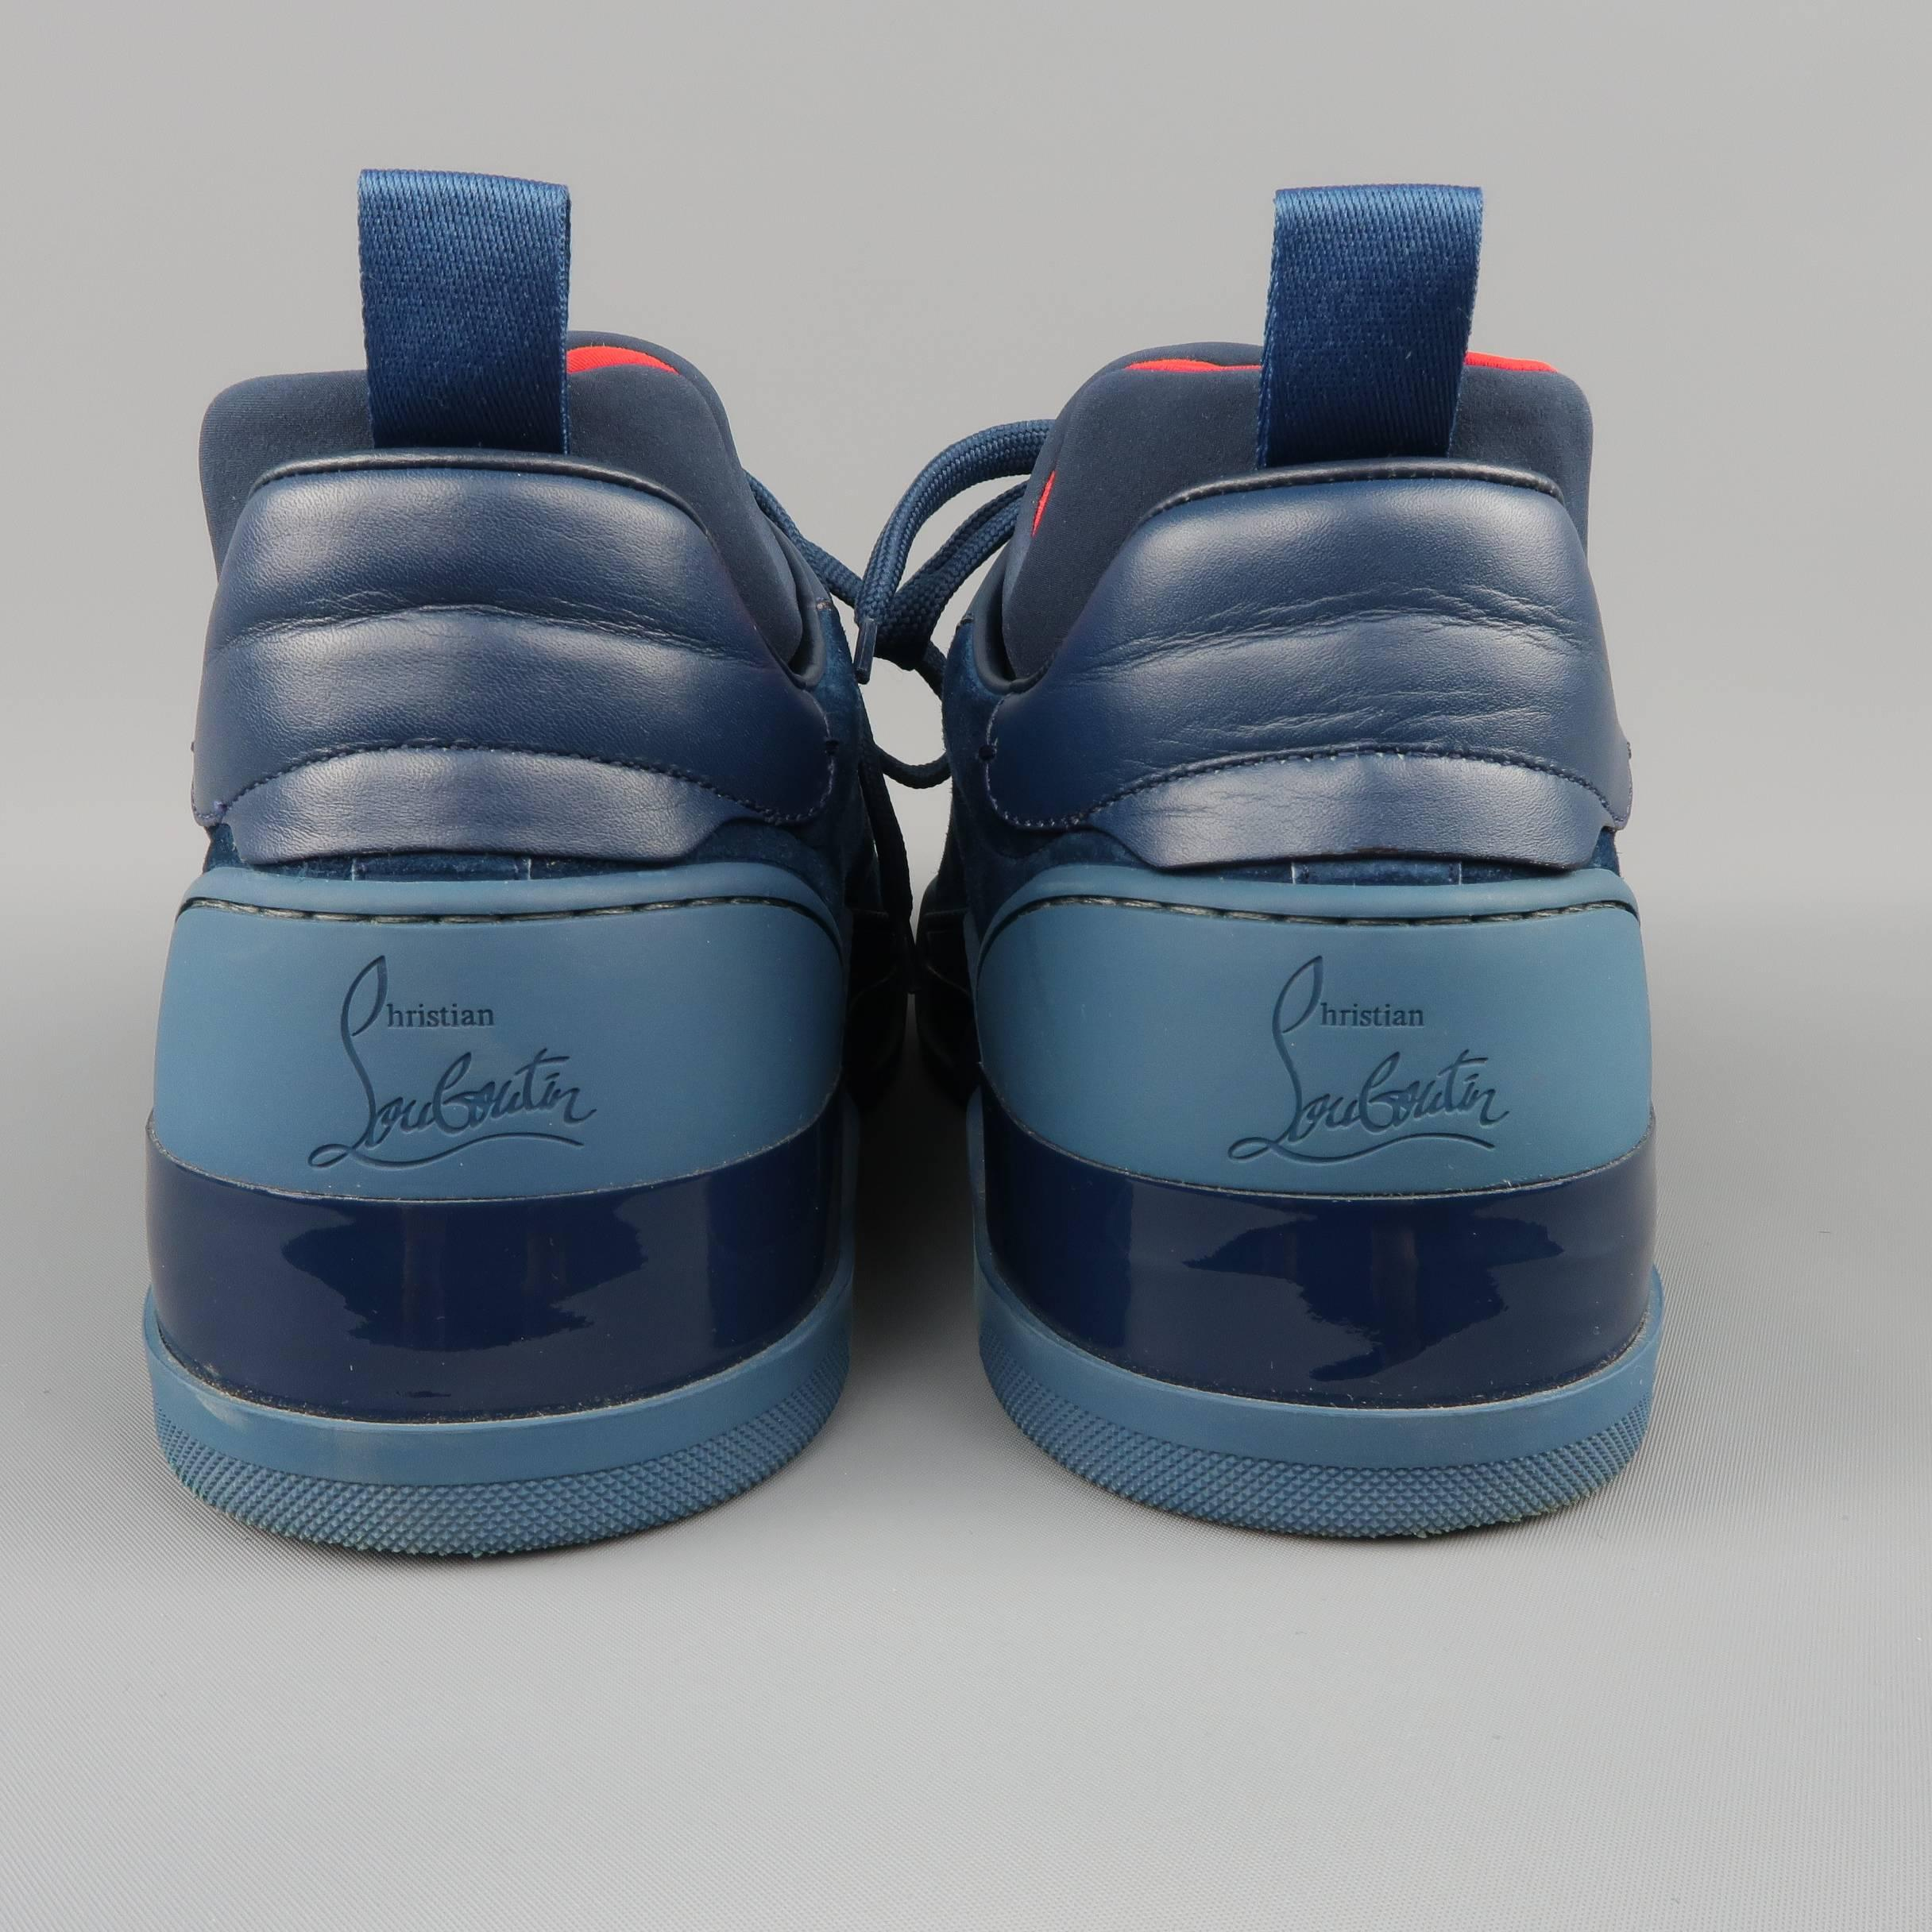 ae43a06e8513 Men s CHRISTIAN LOUBOUTIN Sneakers US 10 Navy Suede and Leather AURELIEN  FLAT at 1stdibs